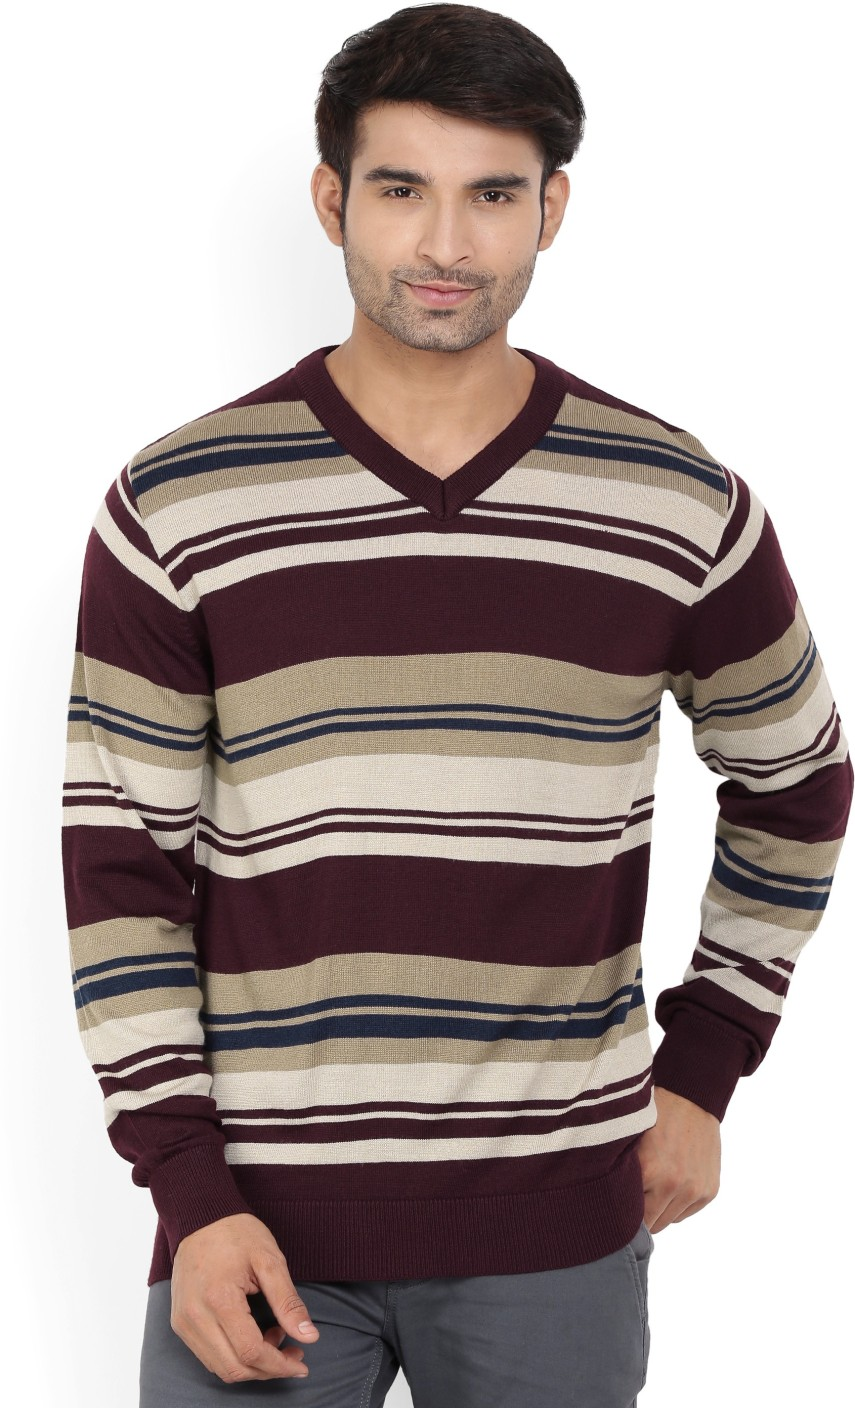 Raymond Striped V-neck Casual Men Maroon Sweater - Buy Dark Maroon ...